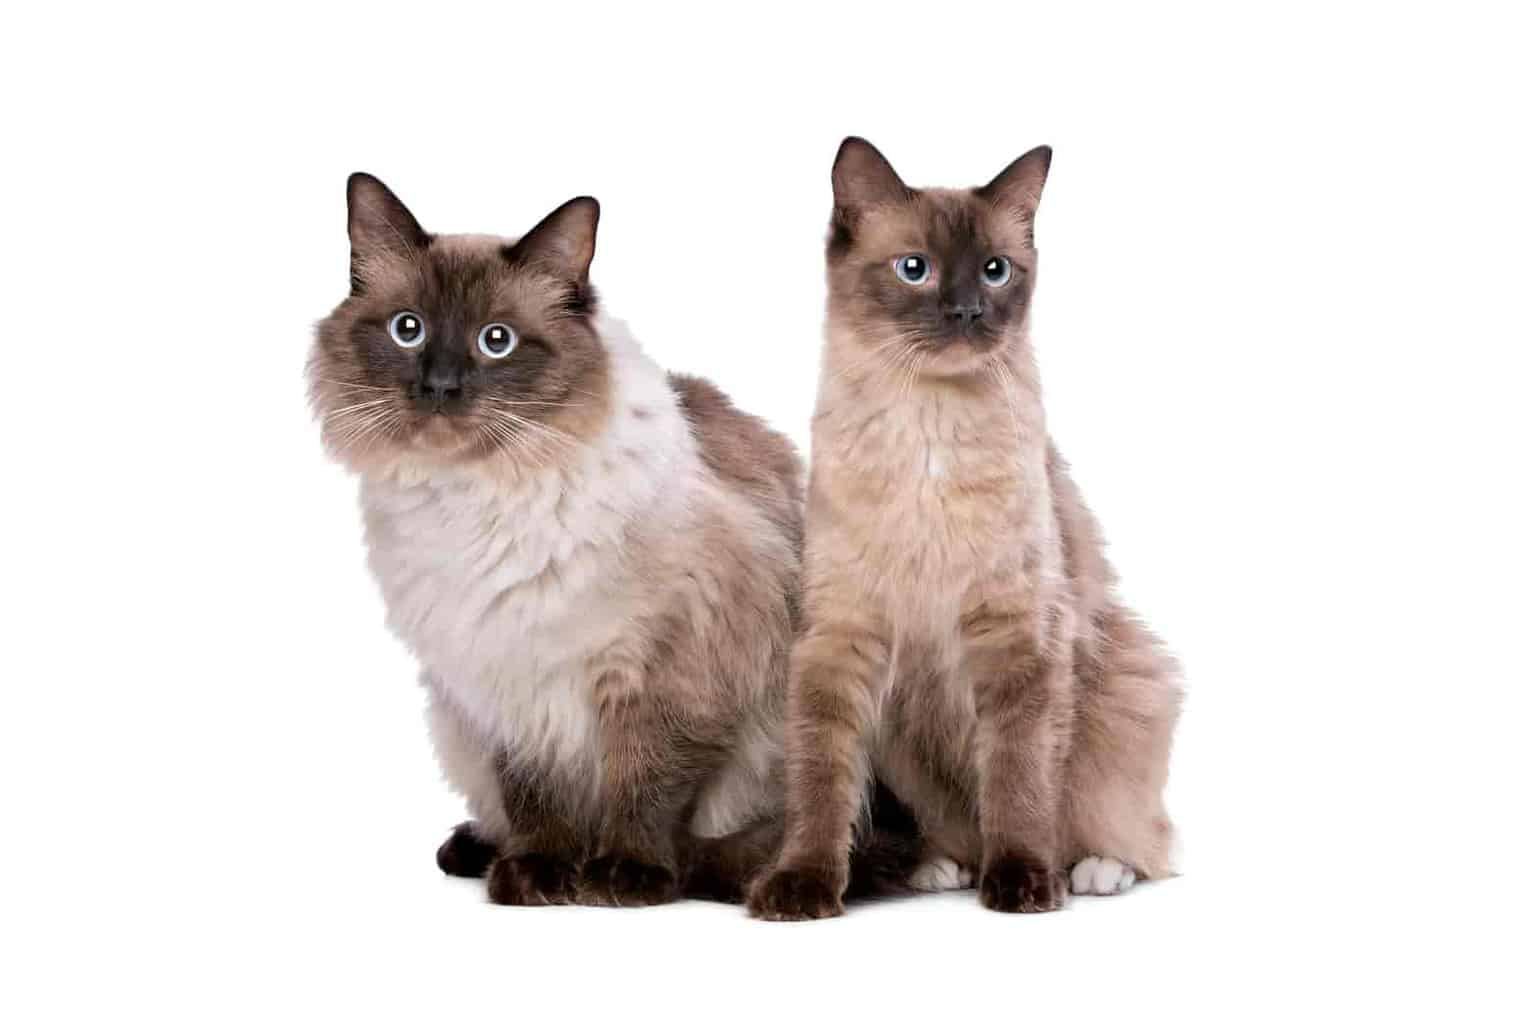 How do I know if my ragdoll is purebred